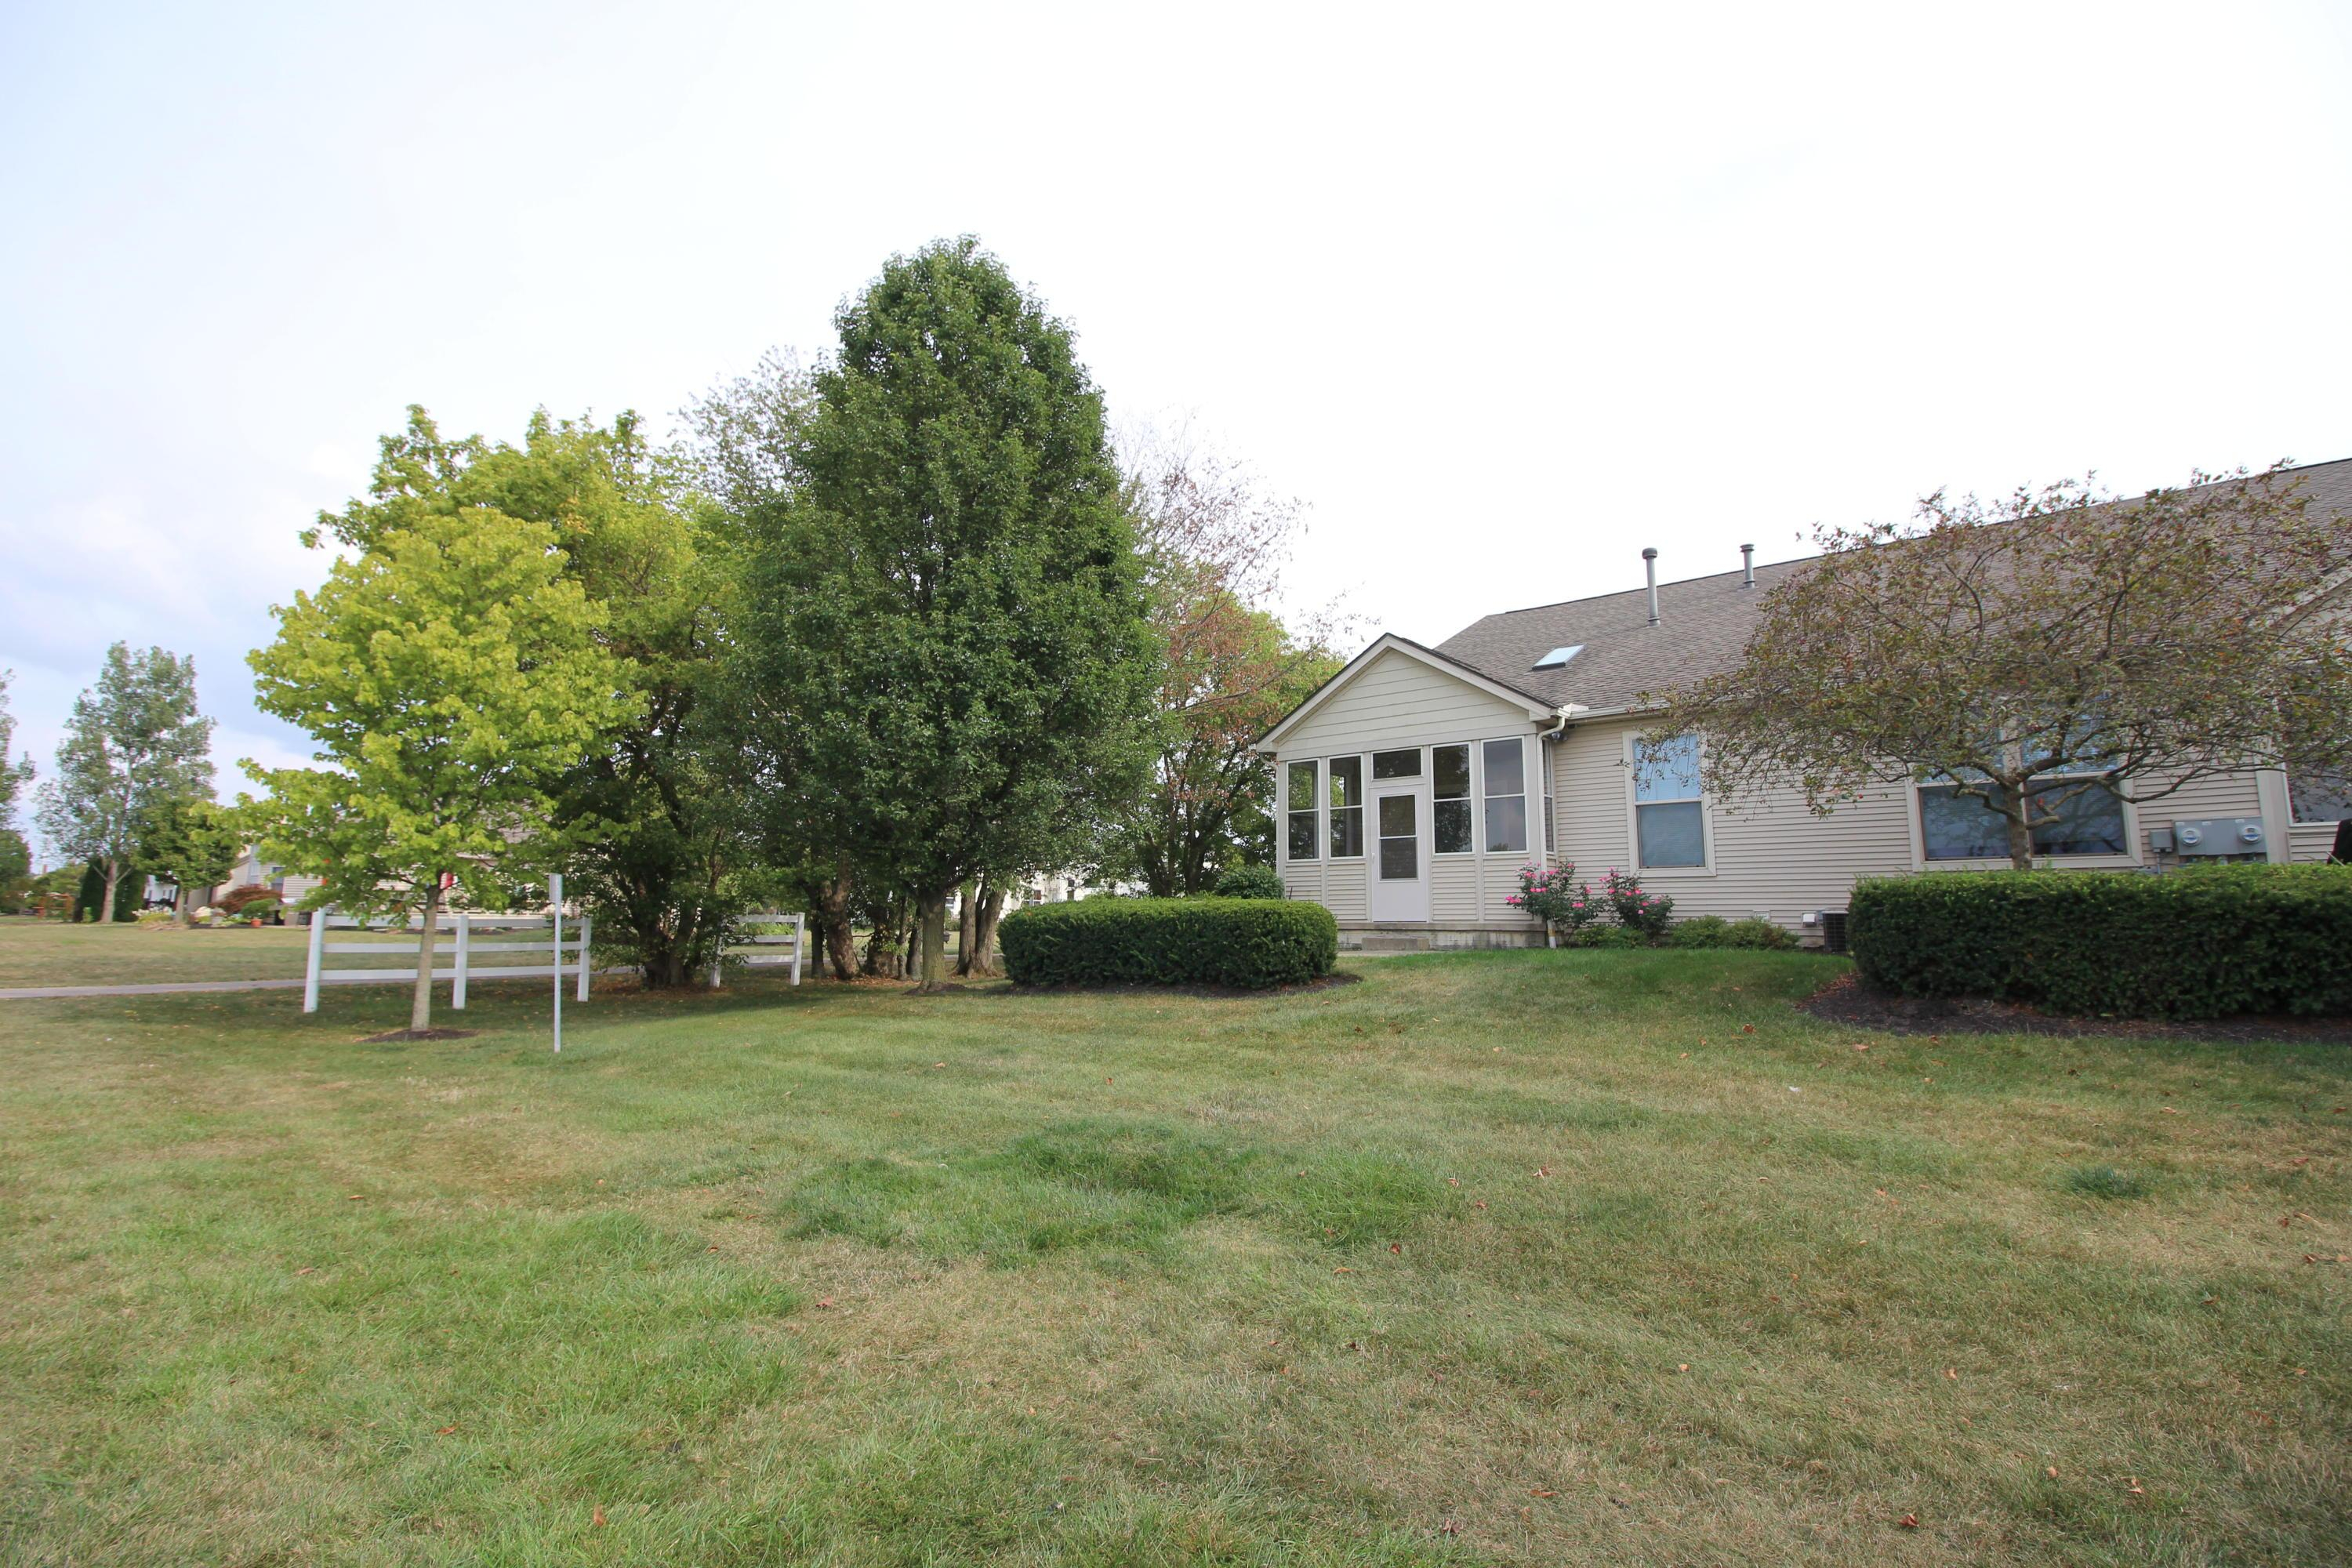 5990 Coventry Bend Drive, Hilliard, Ohio 43026, 2 Bedrooms Bedrooms, ,2 BathroomsBathrooms,Residential,For Sale,Coventry Bend,220031486